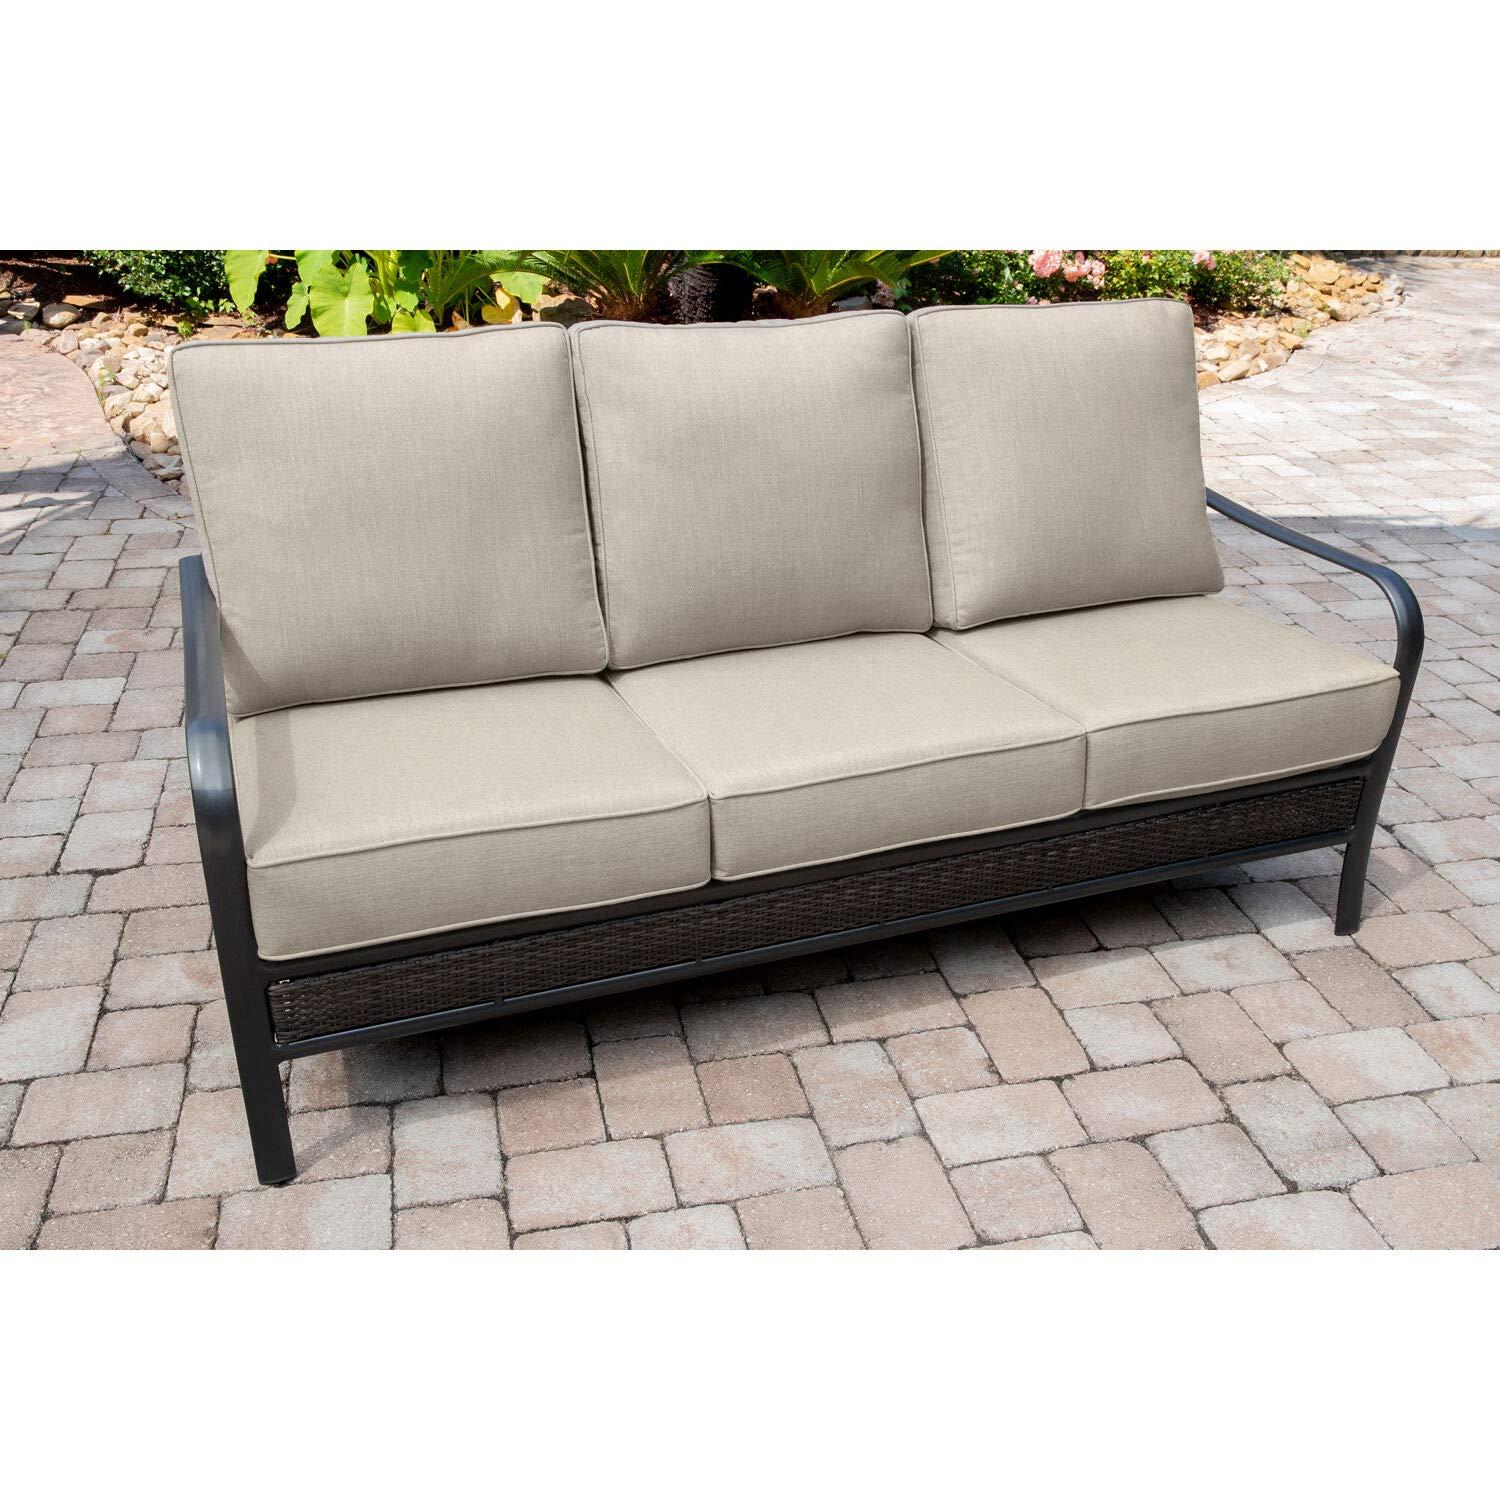 Amazon Com Hanover Oakmont Grade Aluminum Woven Sofa With Plush